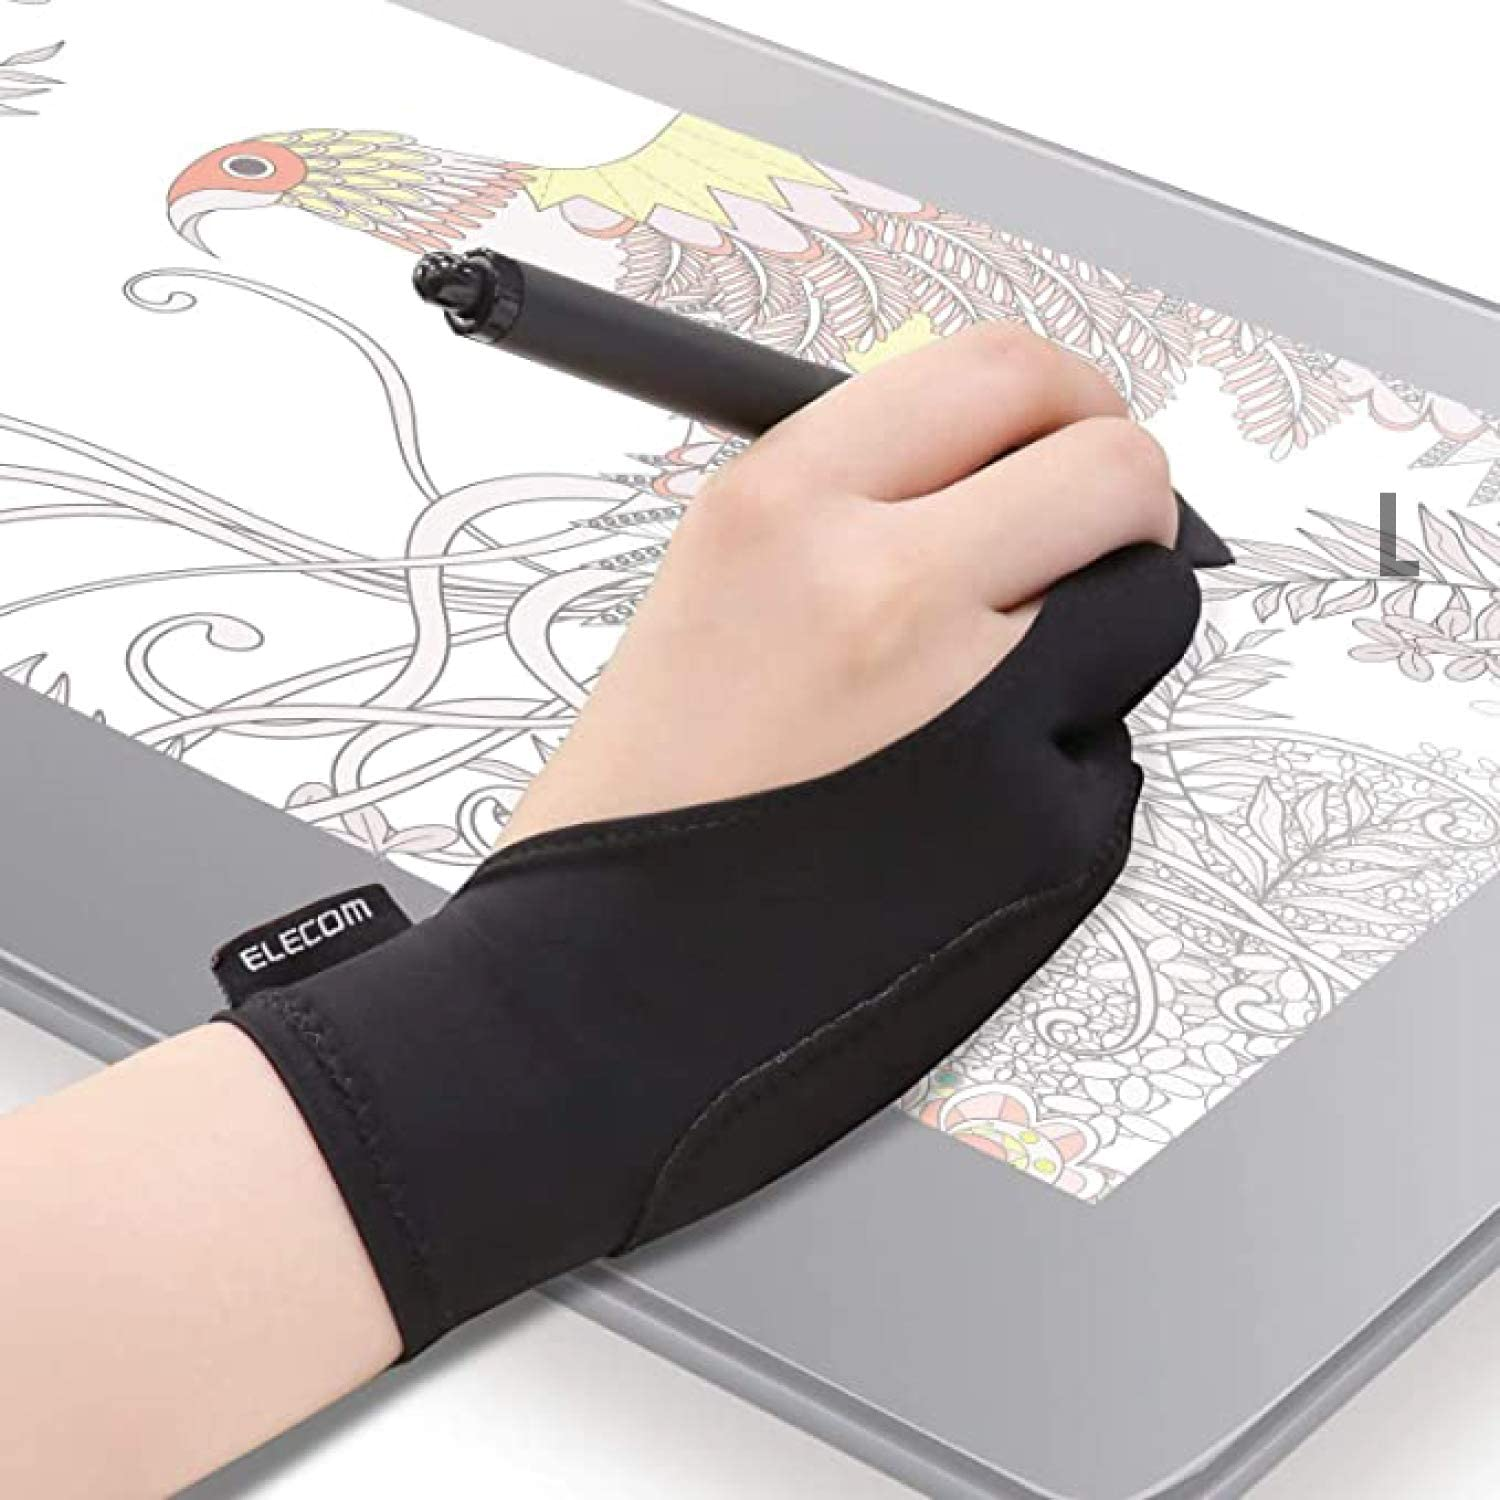 Elecom Two-Finger Glove for Graphics Drawing Tablet Image